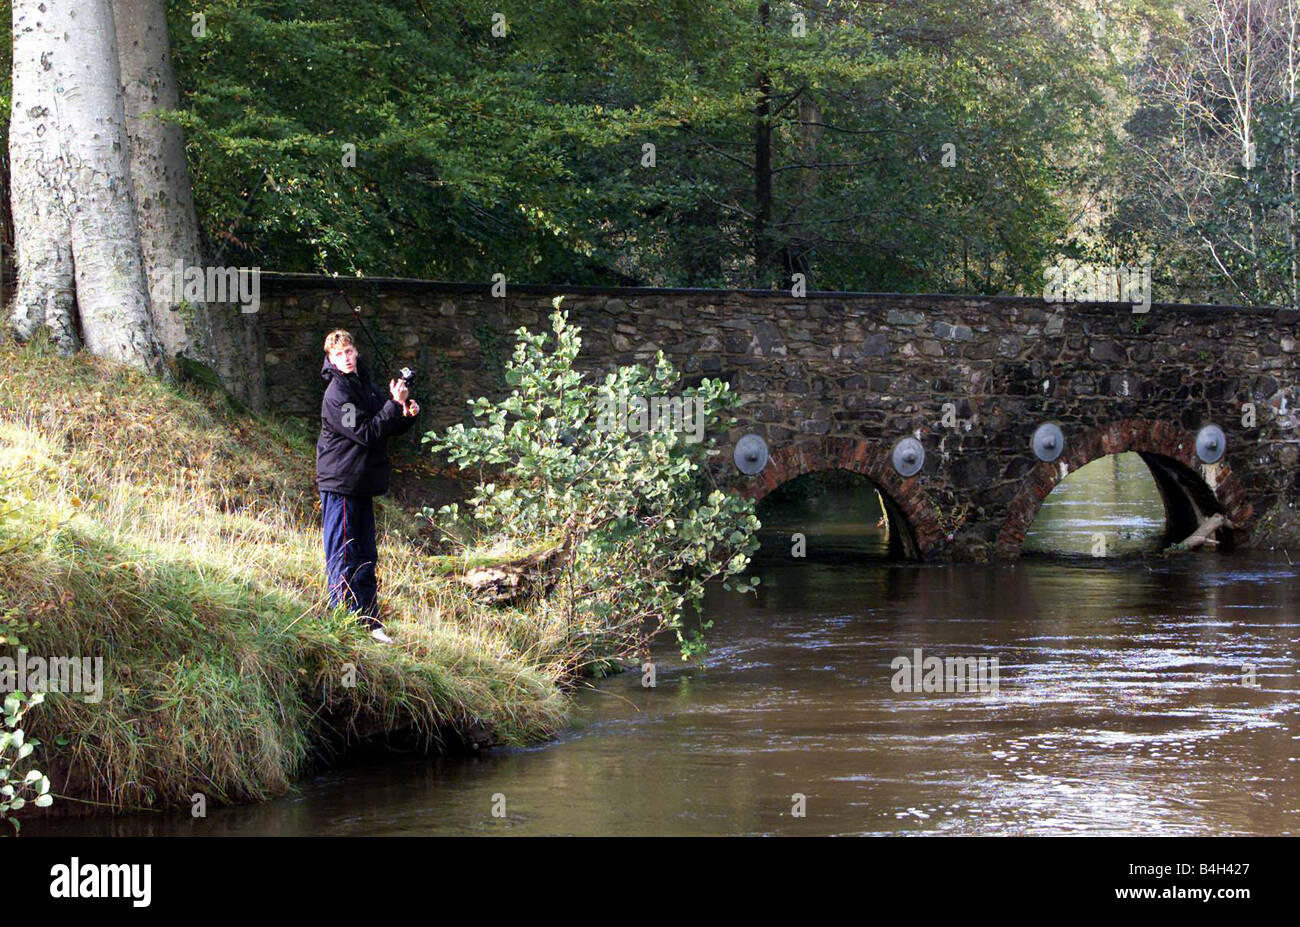 Weather Wreak Havoc Across Ulster October 2002 An angler casting on the fast flowing River Lagan at Shaw s Bridge - Stock Image